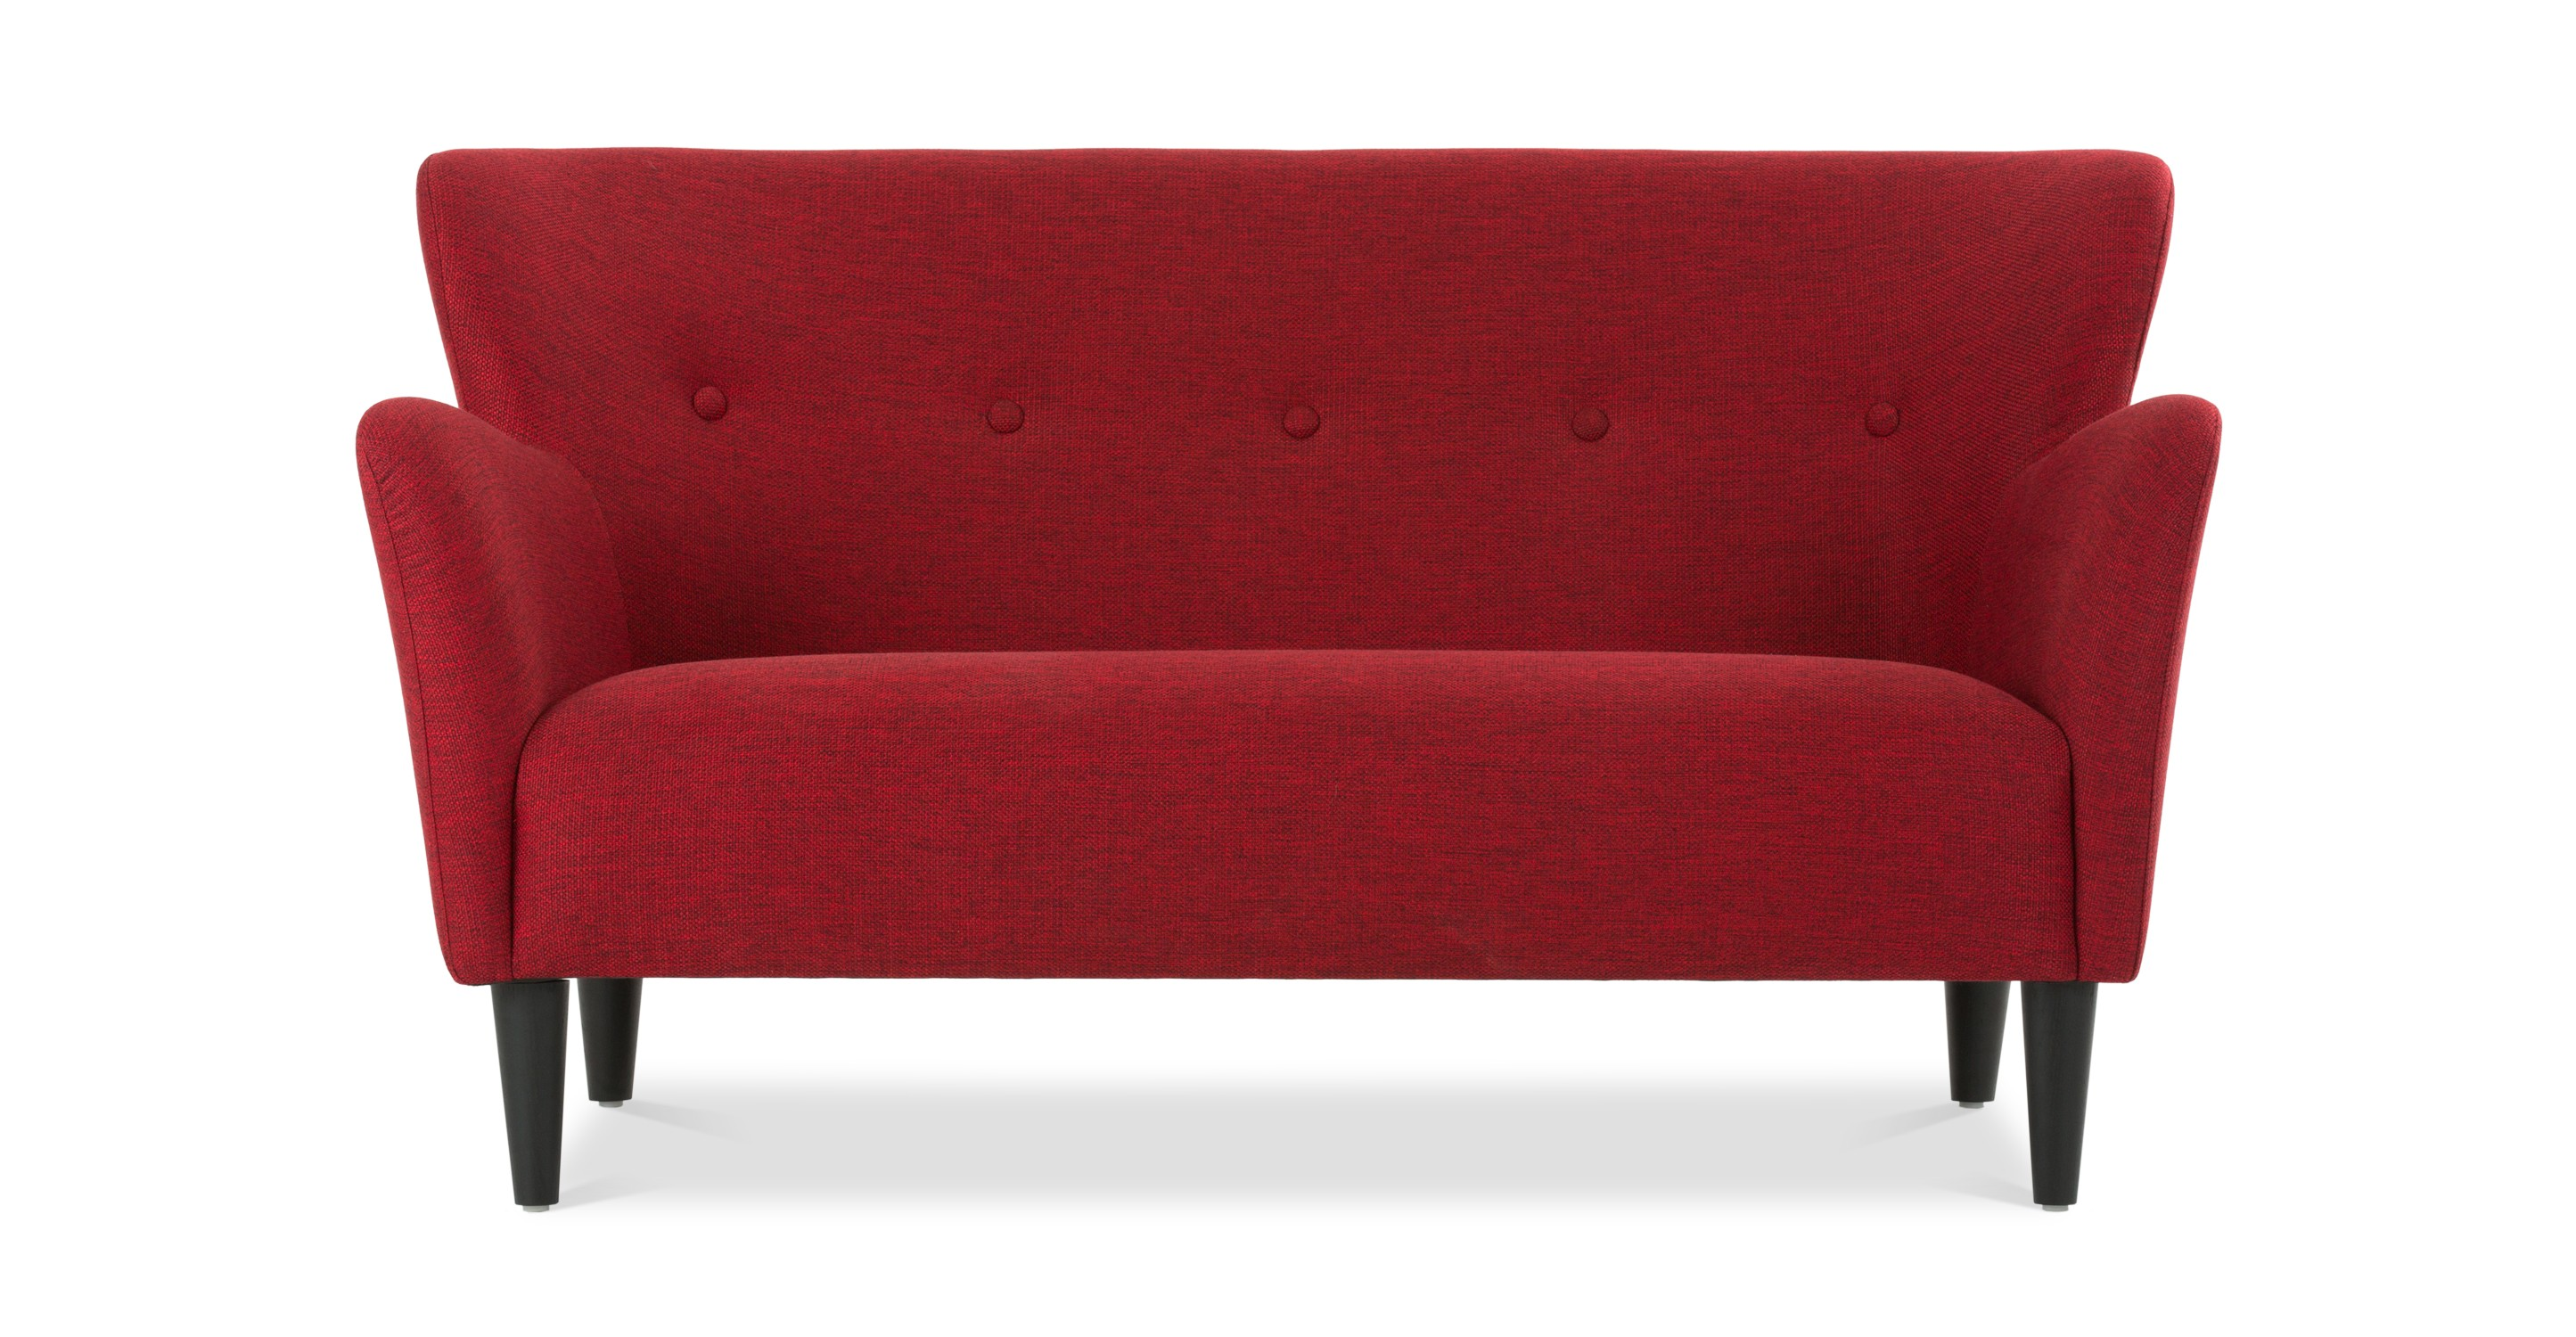 Happy picasso red loveseat loveseats article modern mid century and scandinavian furniture Designer loveseats